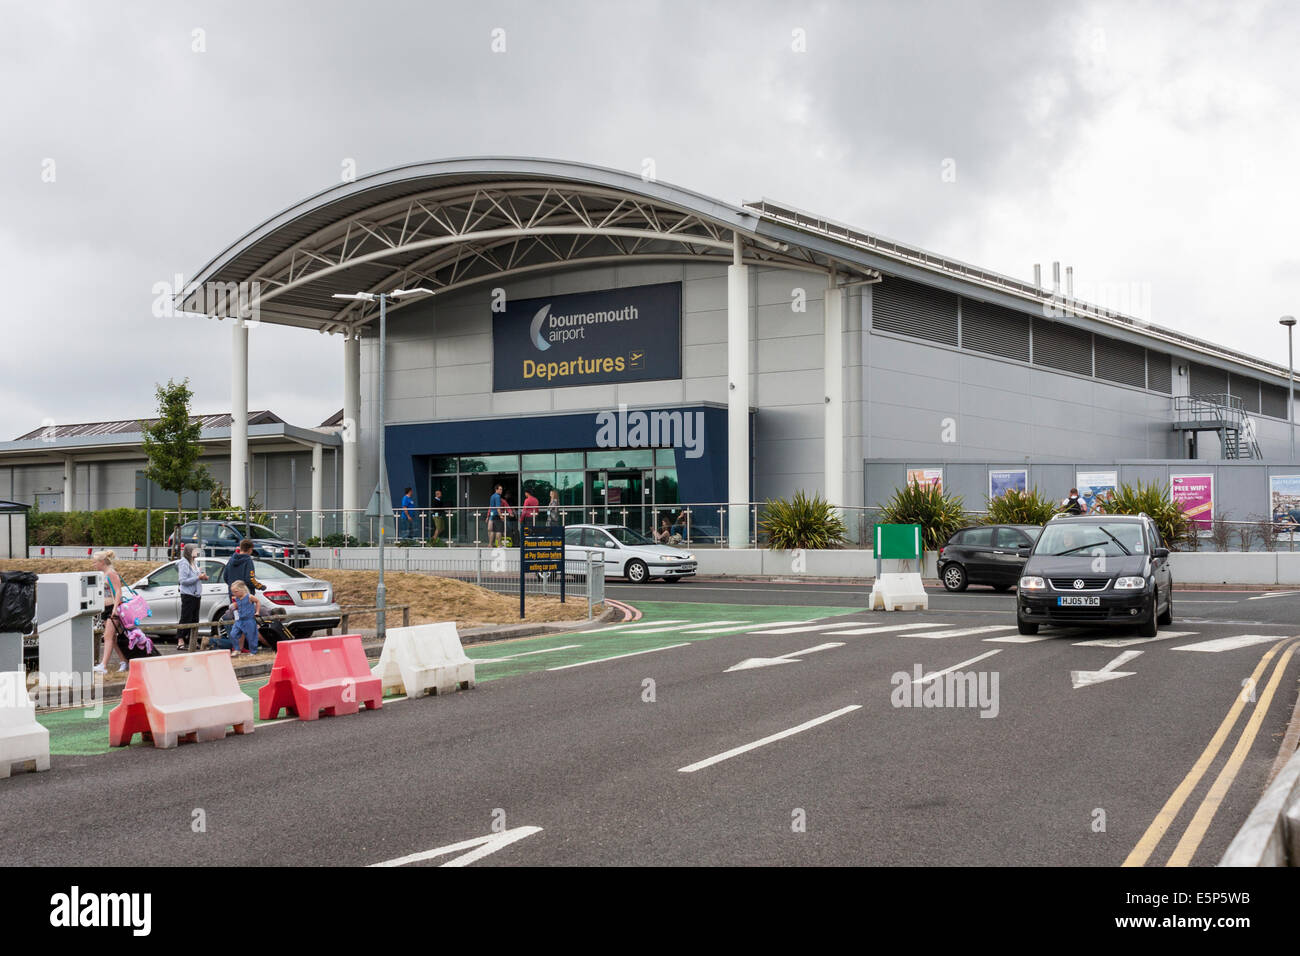 Bournemouth Airport departures terminal, Hampshire, England, GB, UK - Stock Image